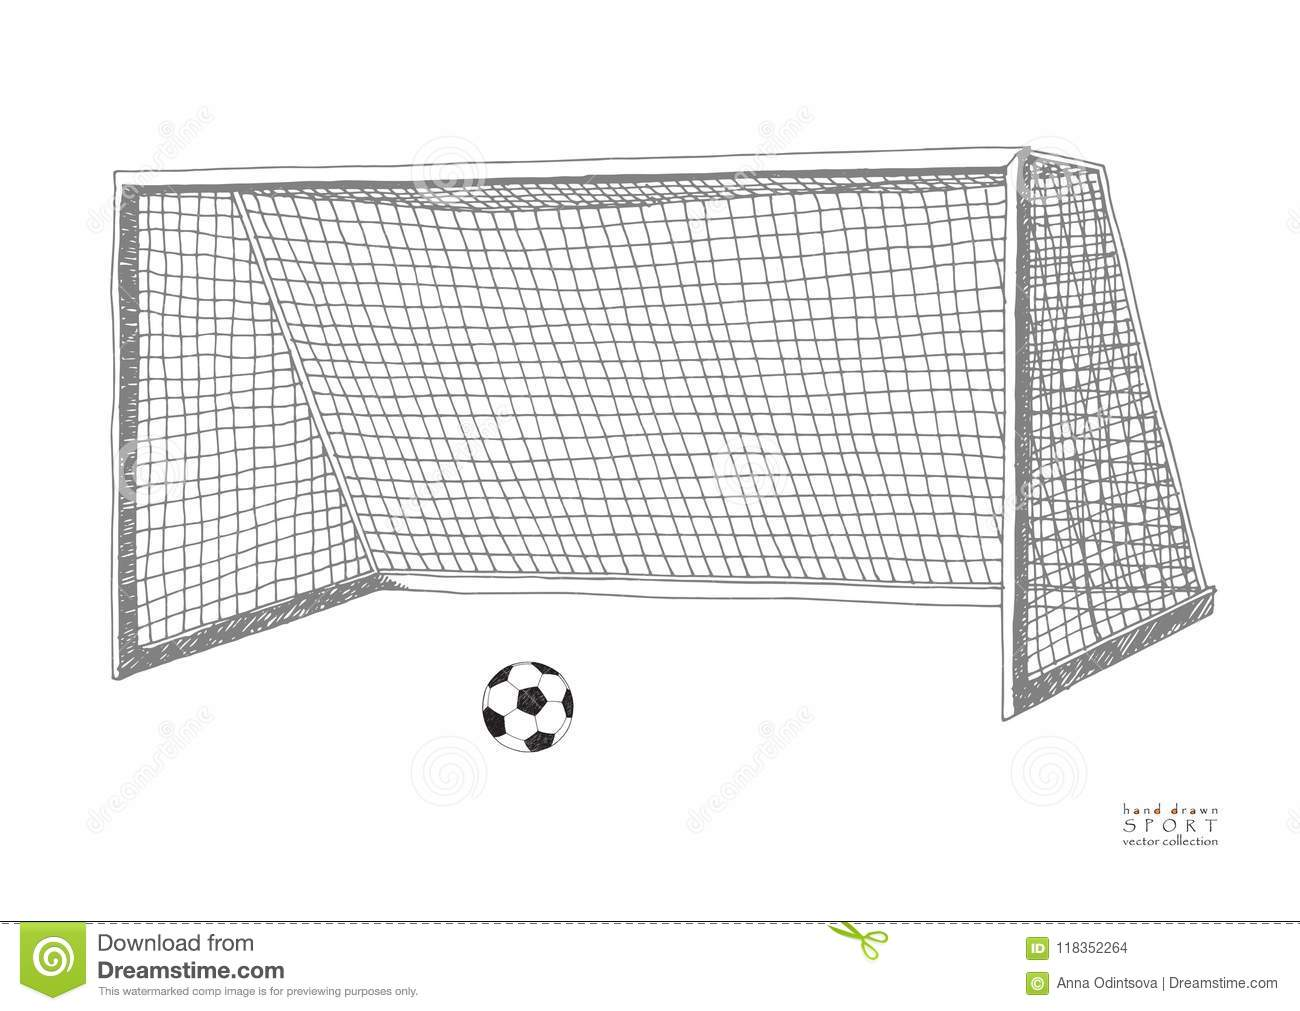 Football goal. Soccer game equipment. Hand drawn vector llustration. Isolated on white background